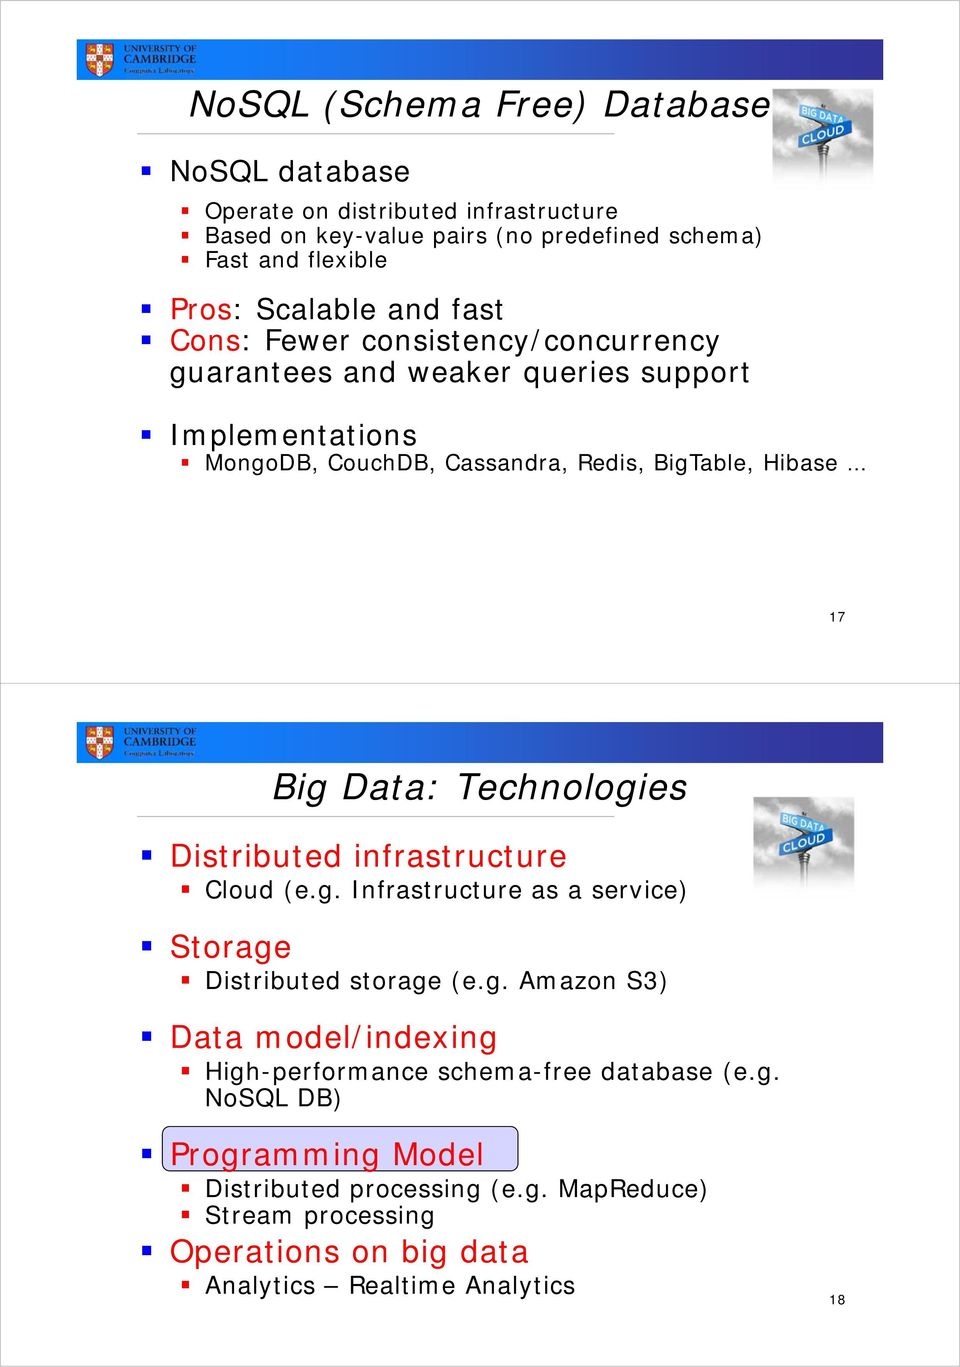 Technologies Distributed infrastructure Cloud (e.g. Infrastructure as a service) Storage Distributed storage (e.g. Amazon S3) Data model/indexing High-performance schema-free database (e.